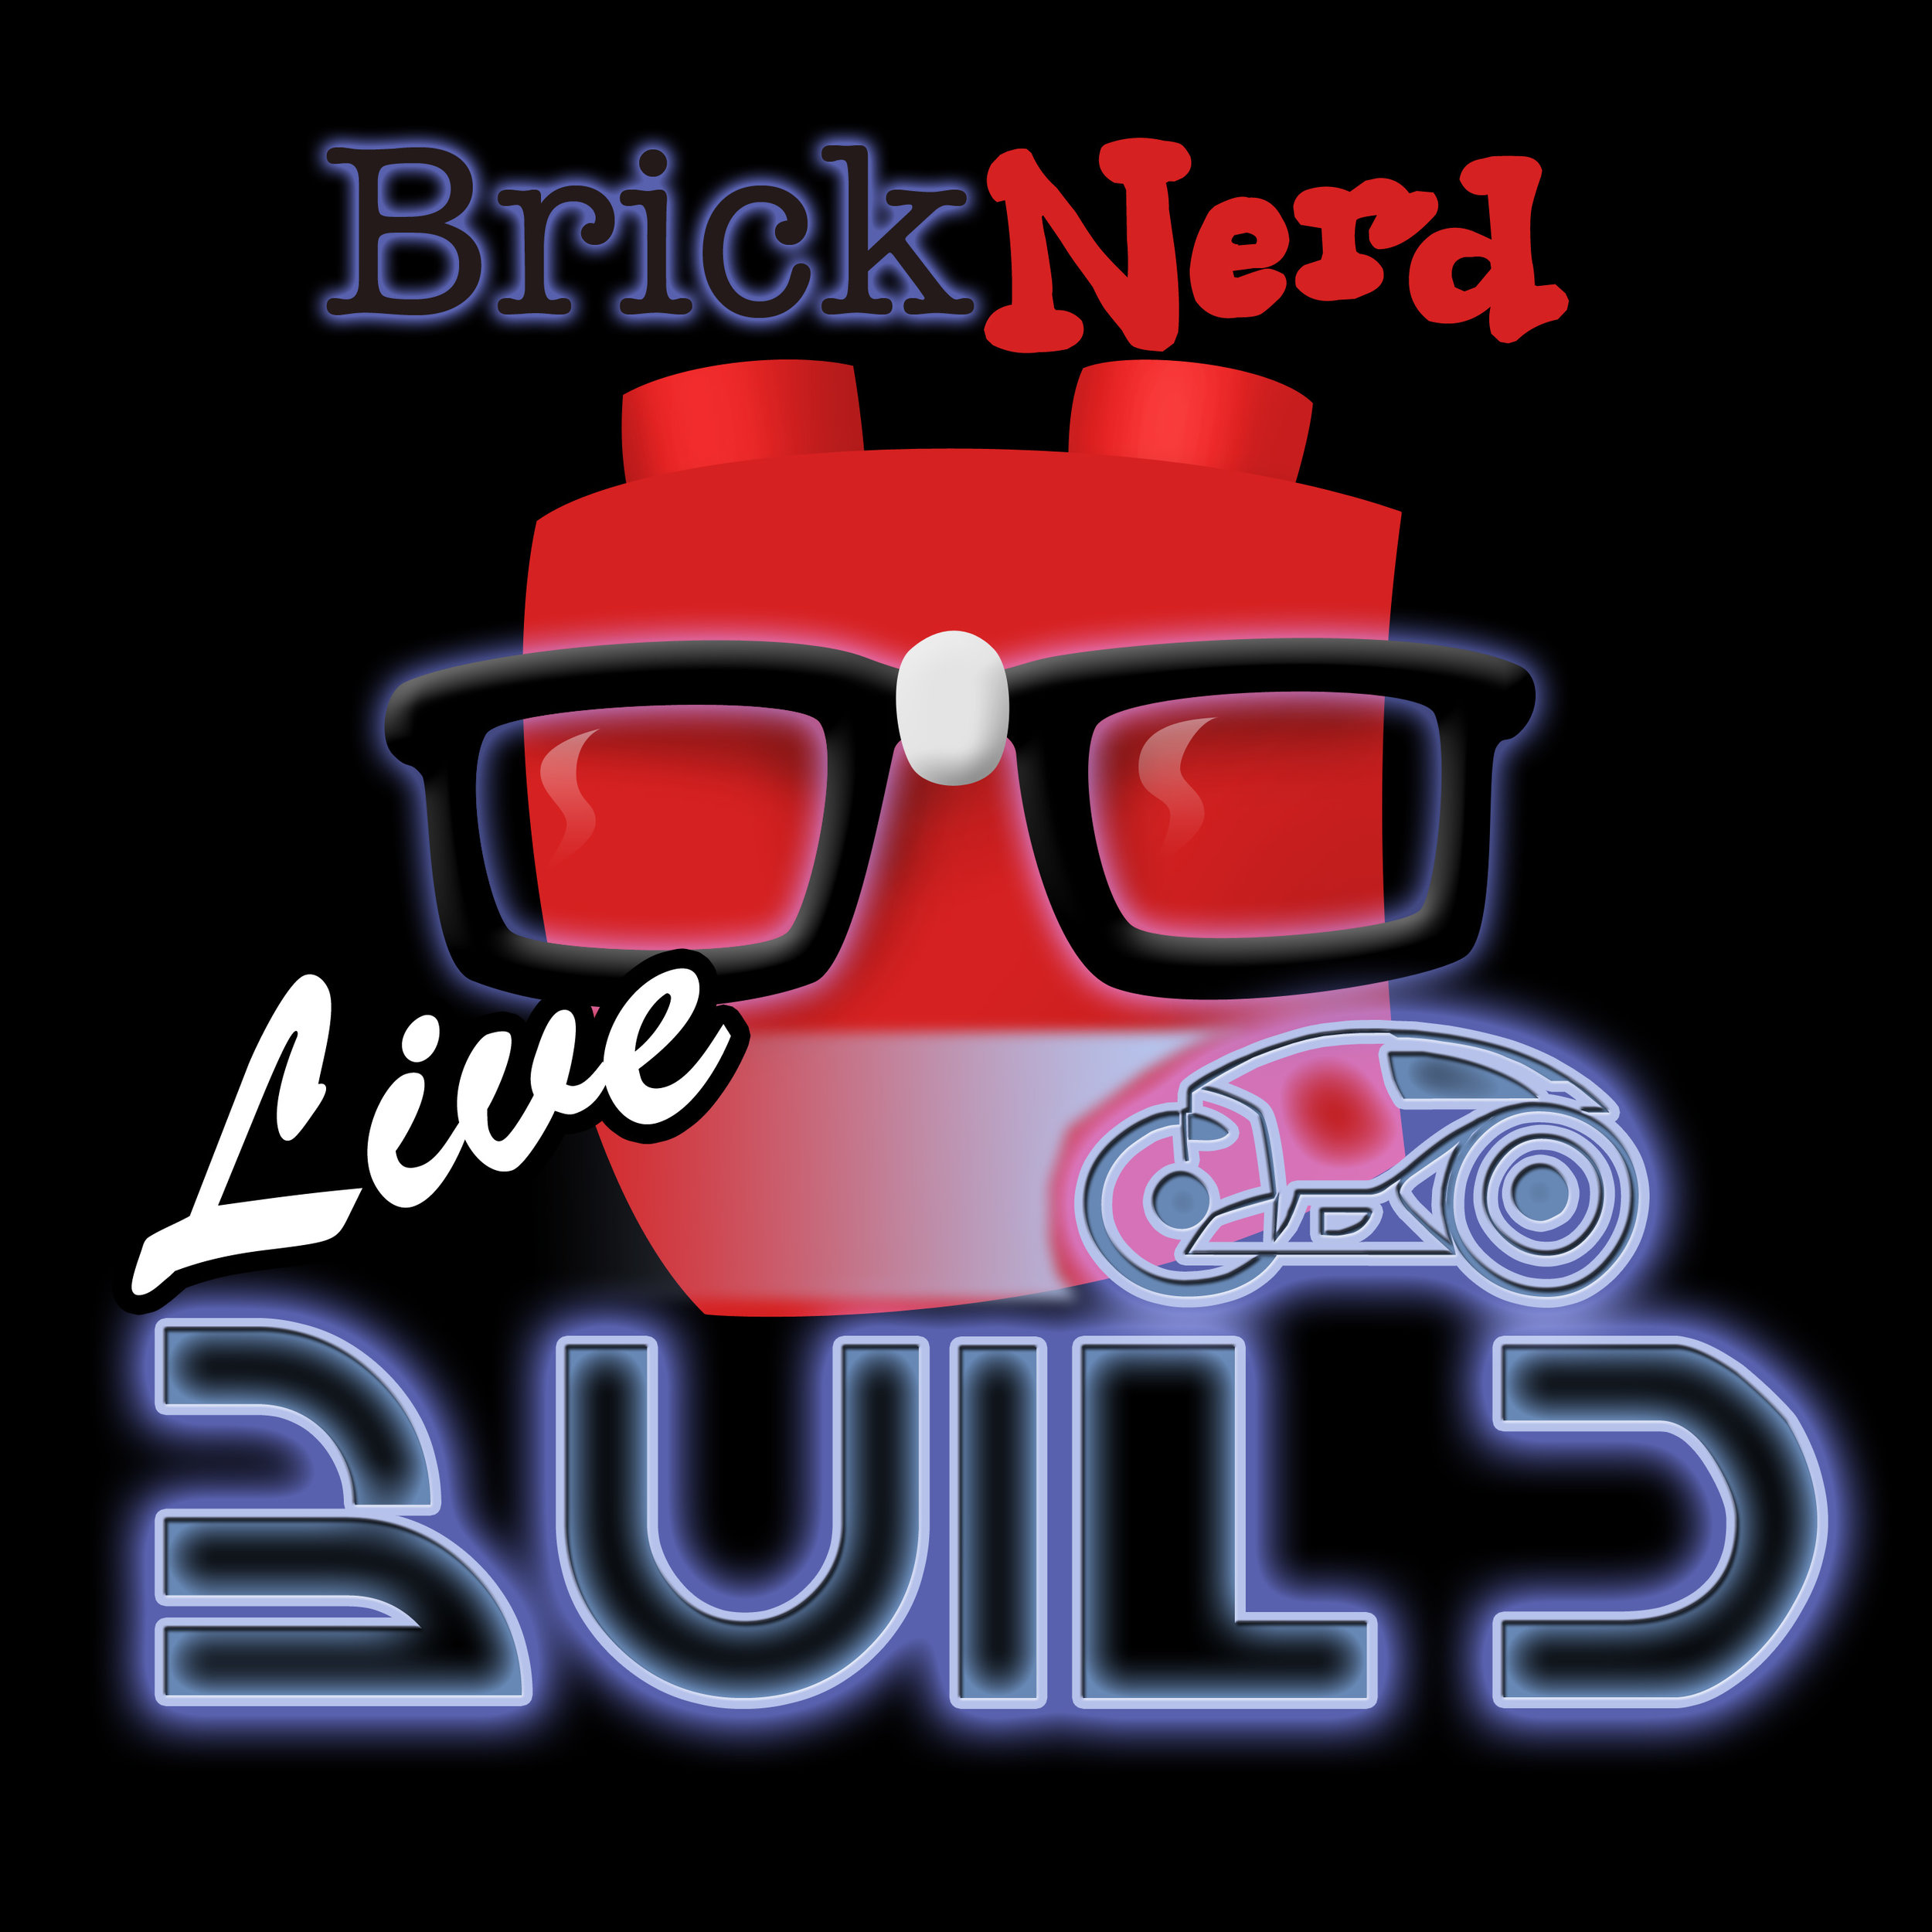 BrickNerd_Live_Build_tron.jpg